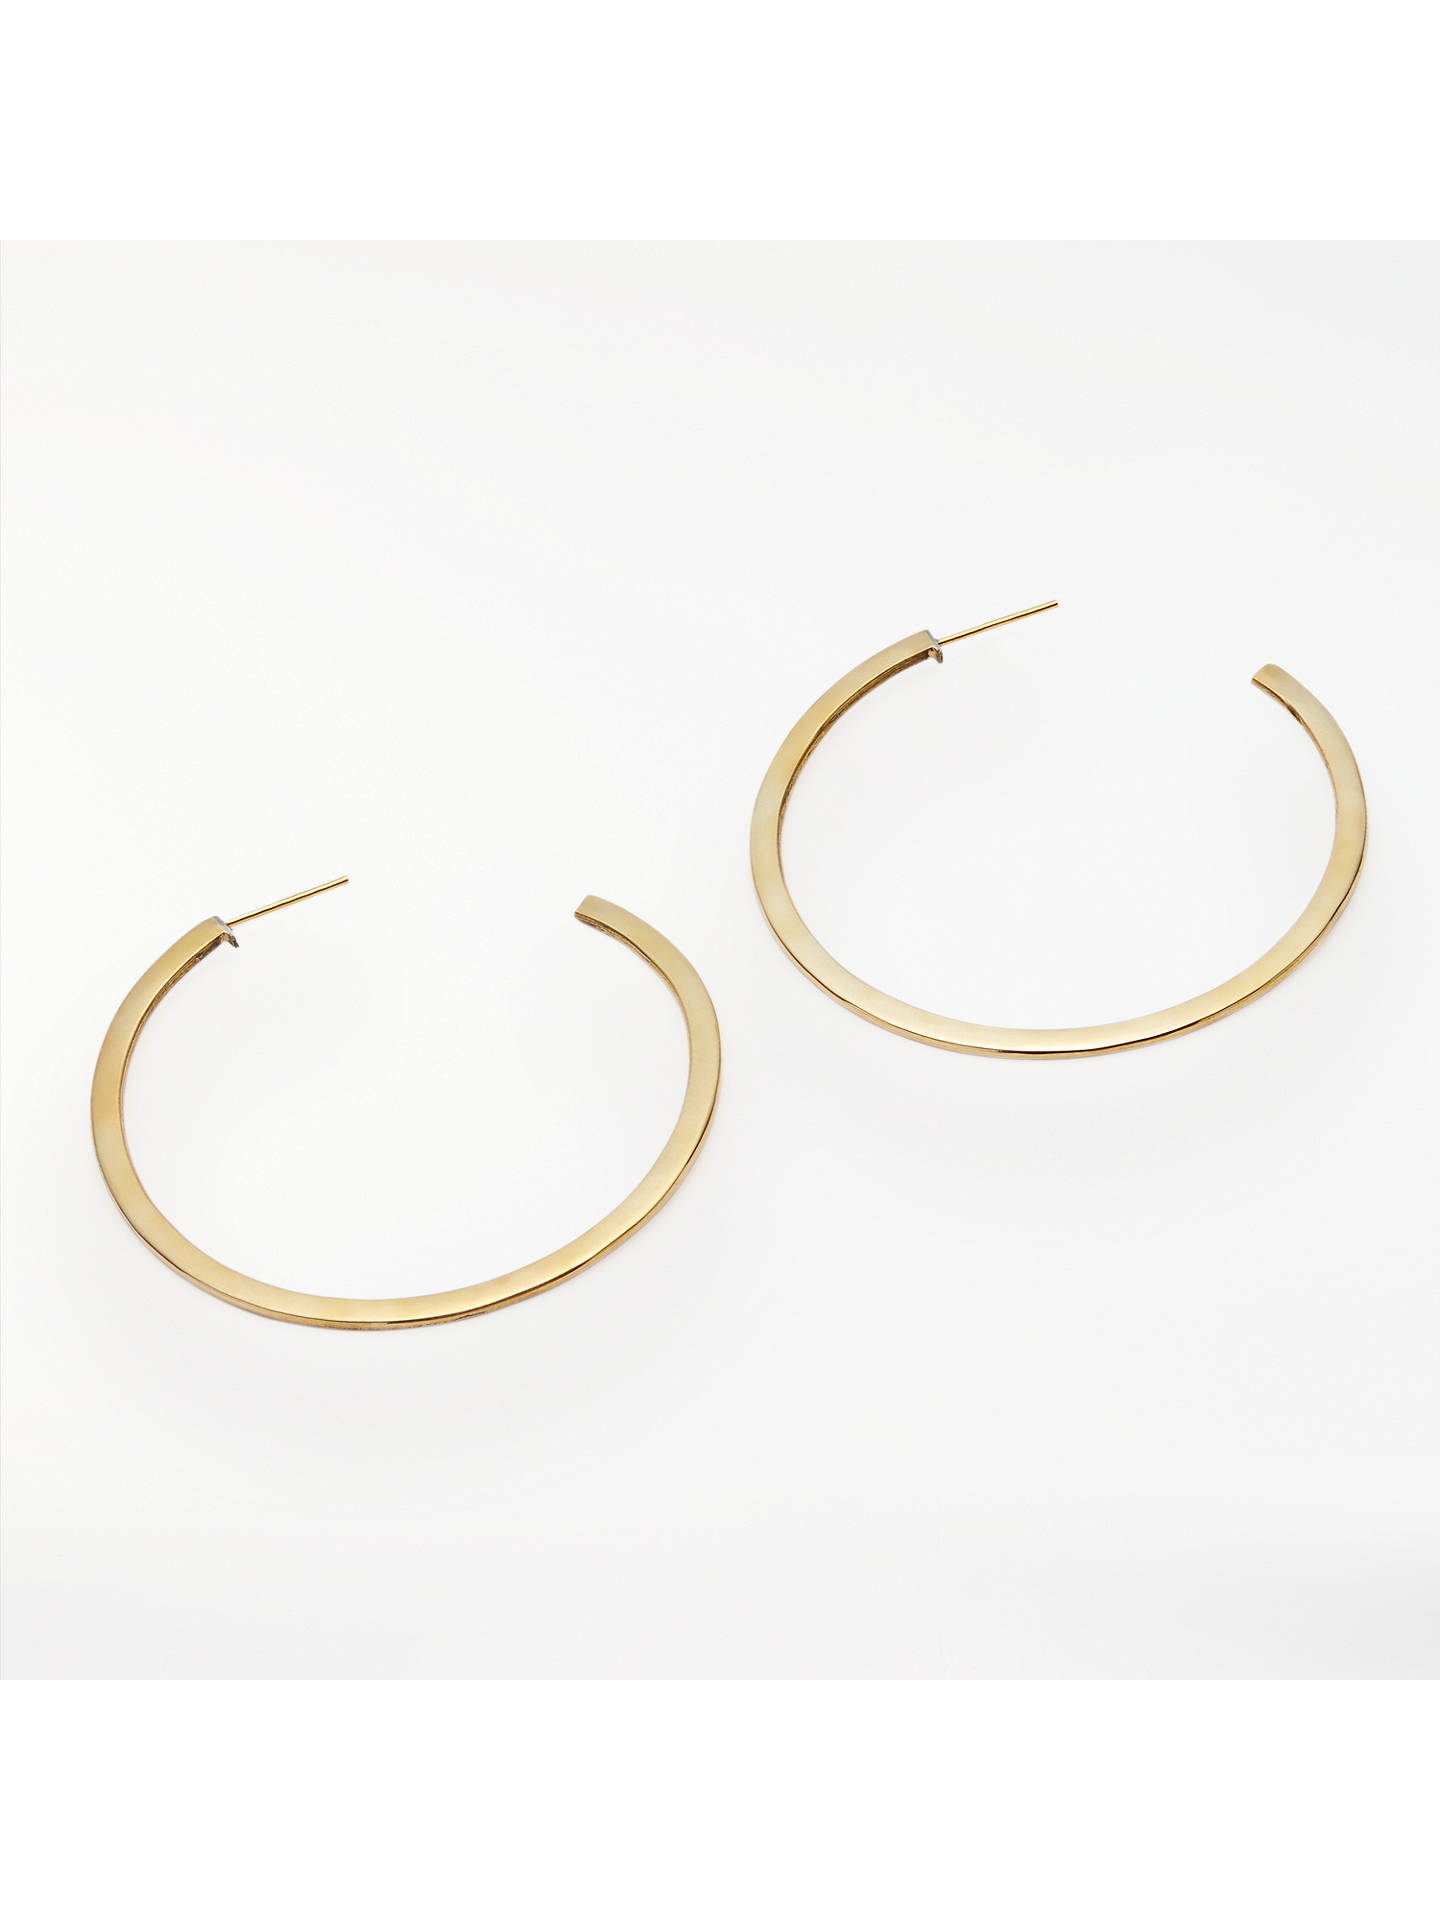 BuyAND/OR Flat Hoop Earrings, Gold Online at johnlewis.com